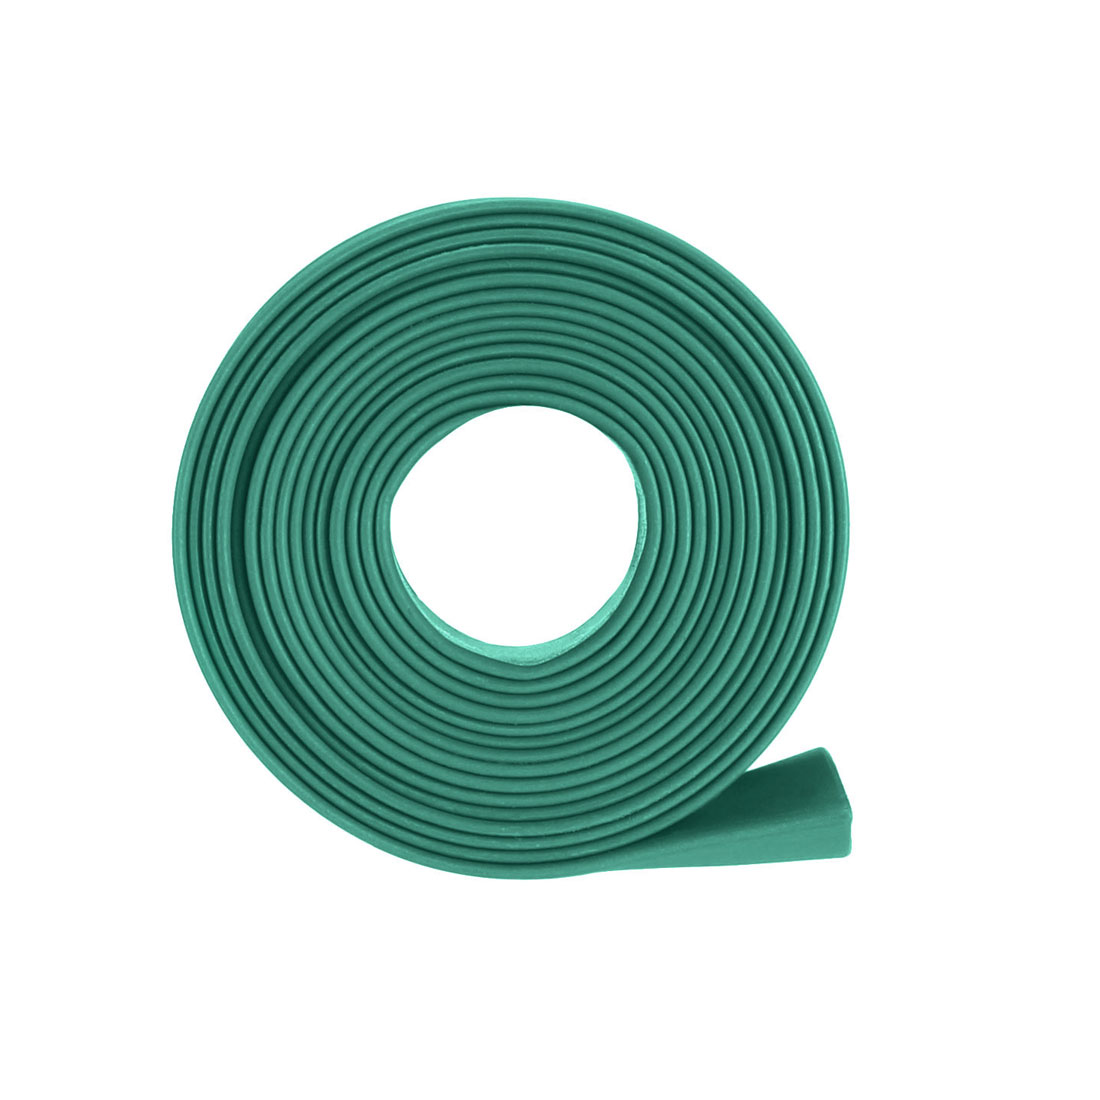 Heat Shrink Tube 2:1 Electrical Insulation Green 11mm Diameter 1m Length